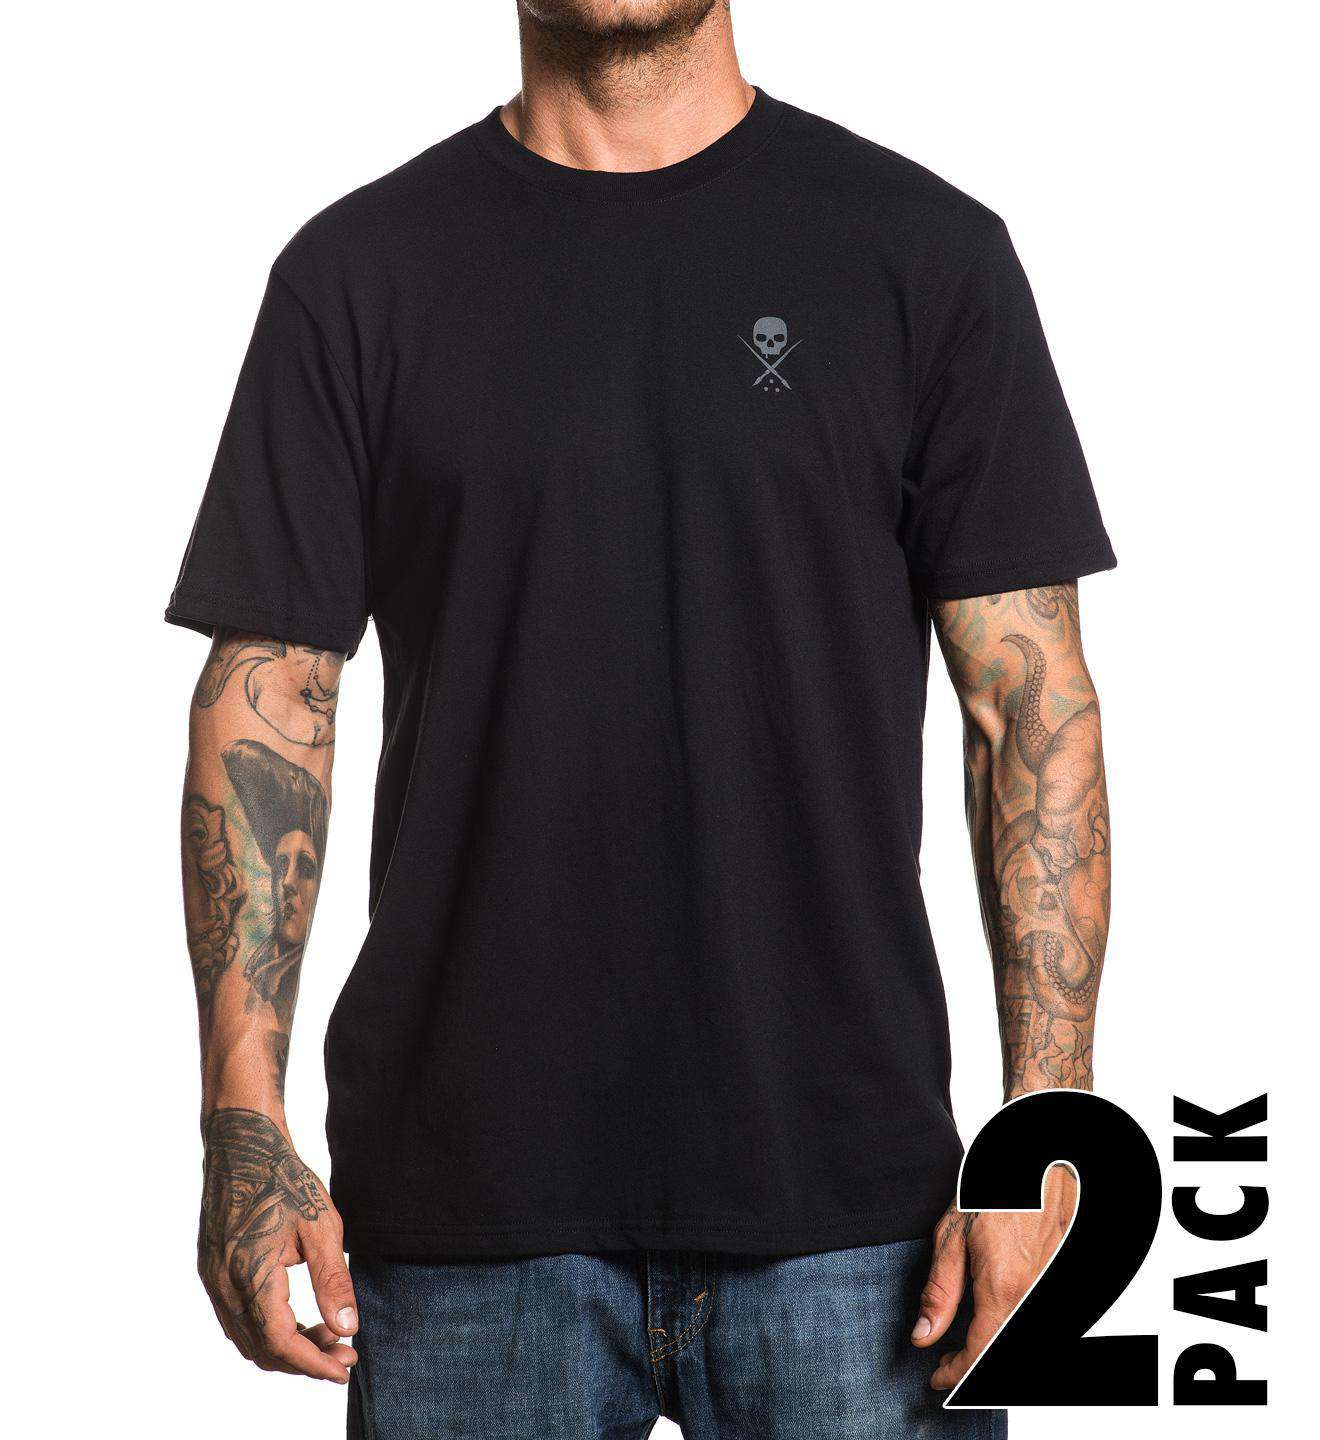 Standard Issue Premium Tee Set - Sullen Art Co.